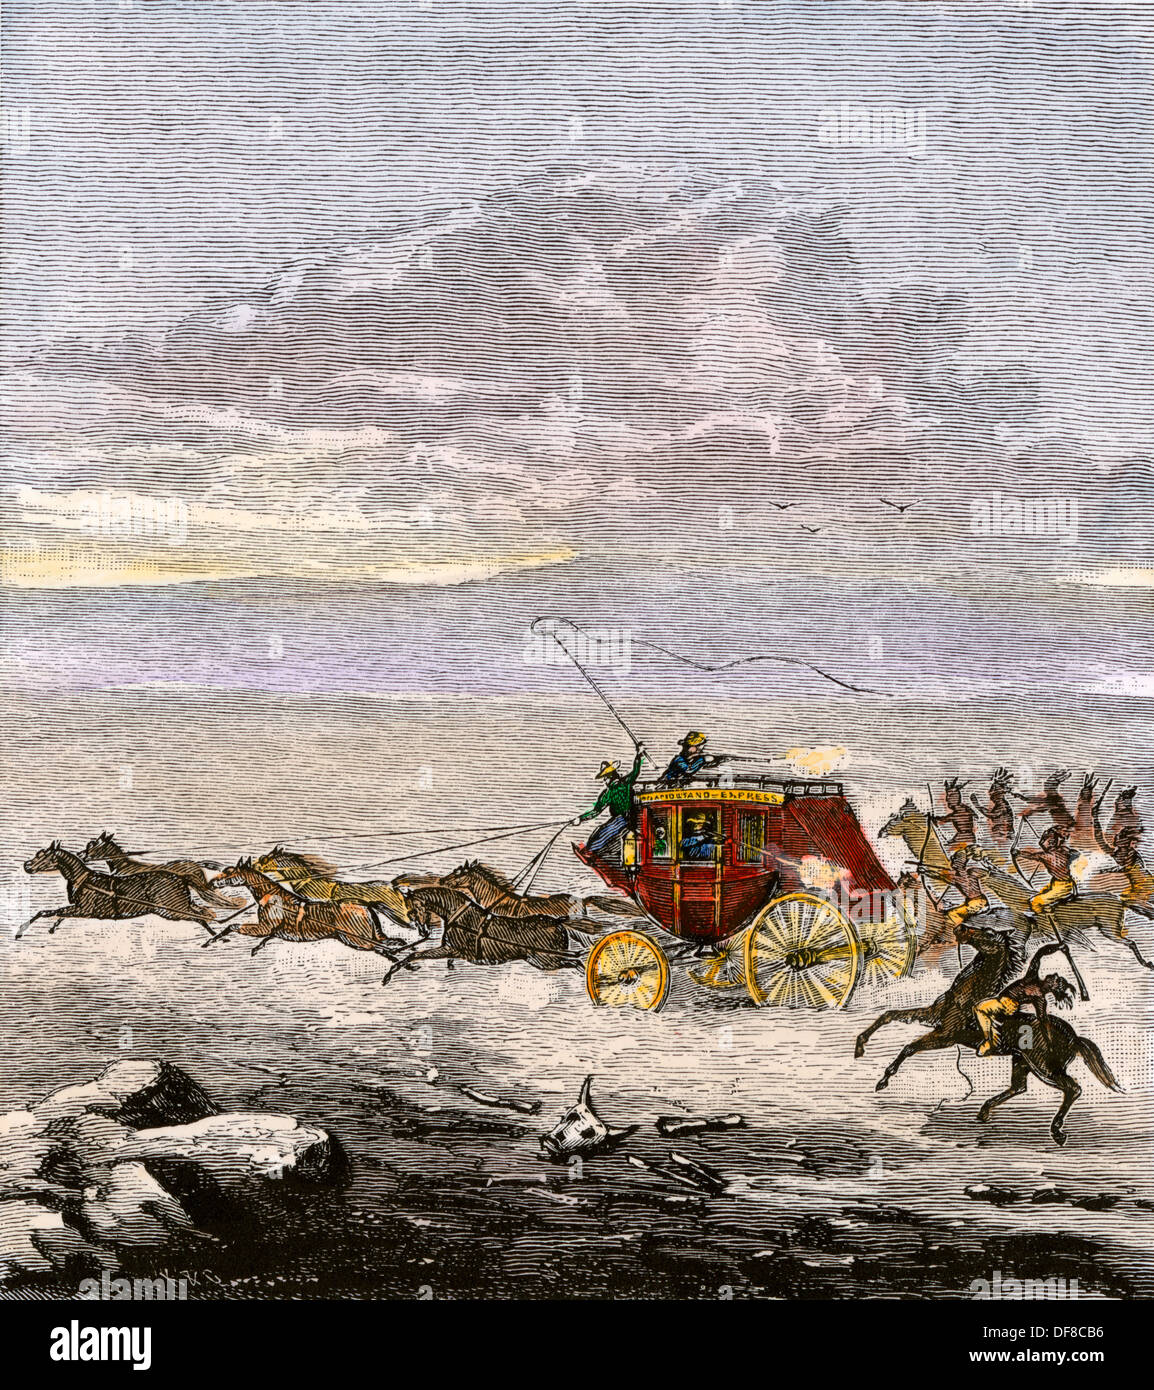 Western stagecoach attacked by Native Americans. Hand-colored woodcut - Stock Image